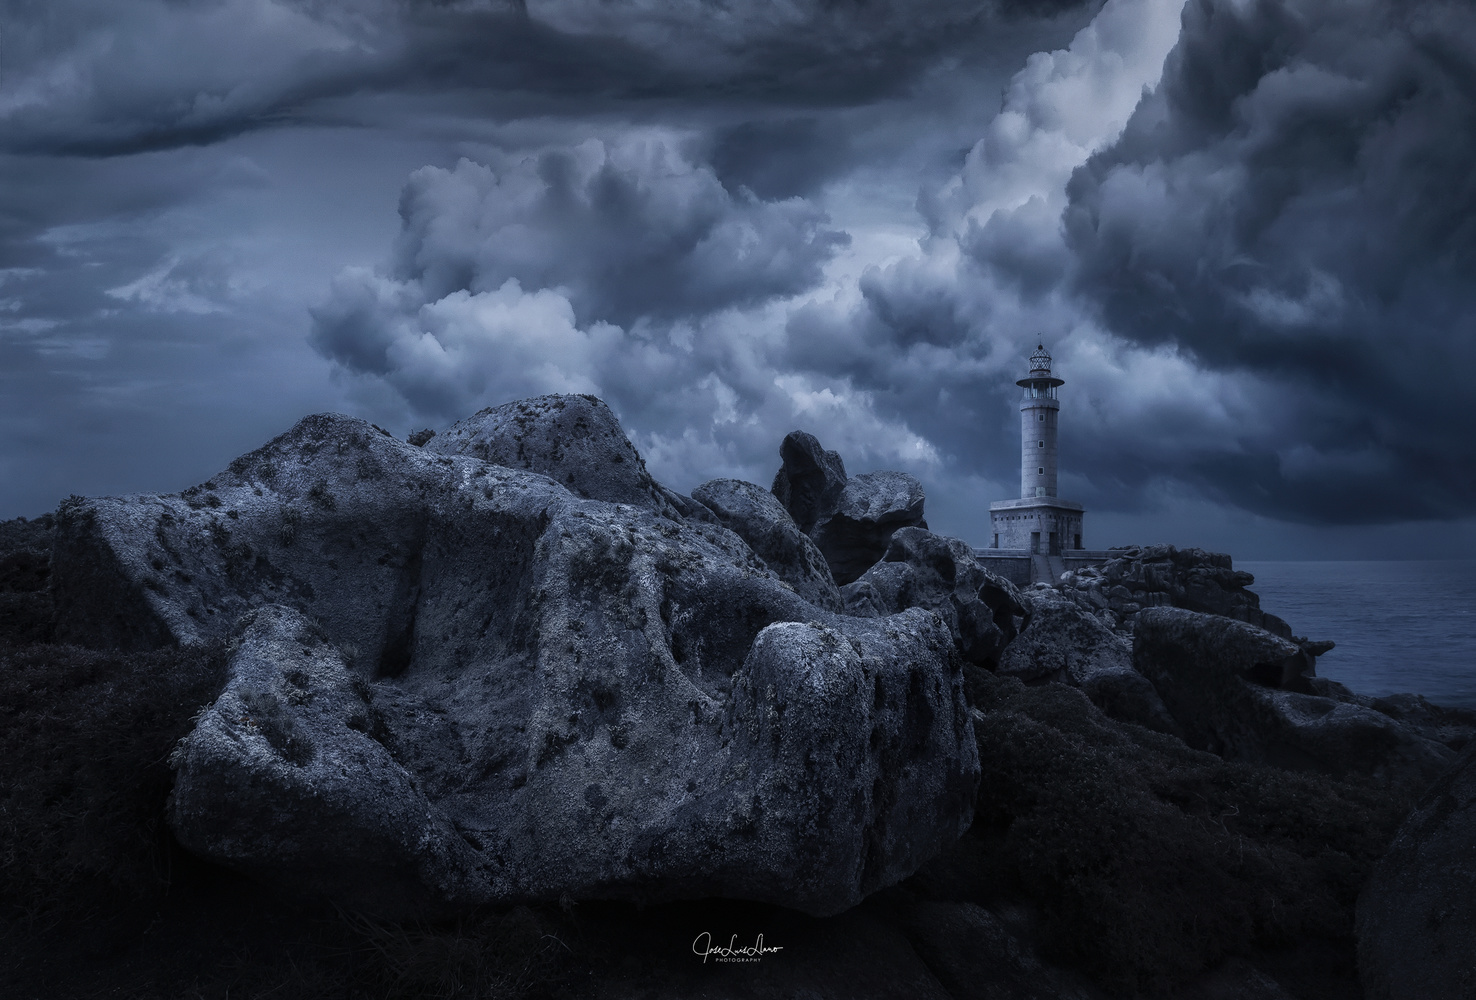 Dramatic Nariga by Jose Luis Llano